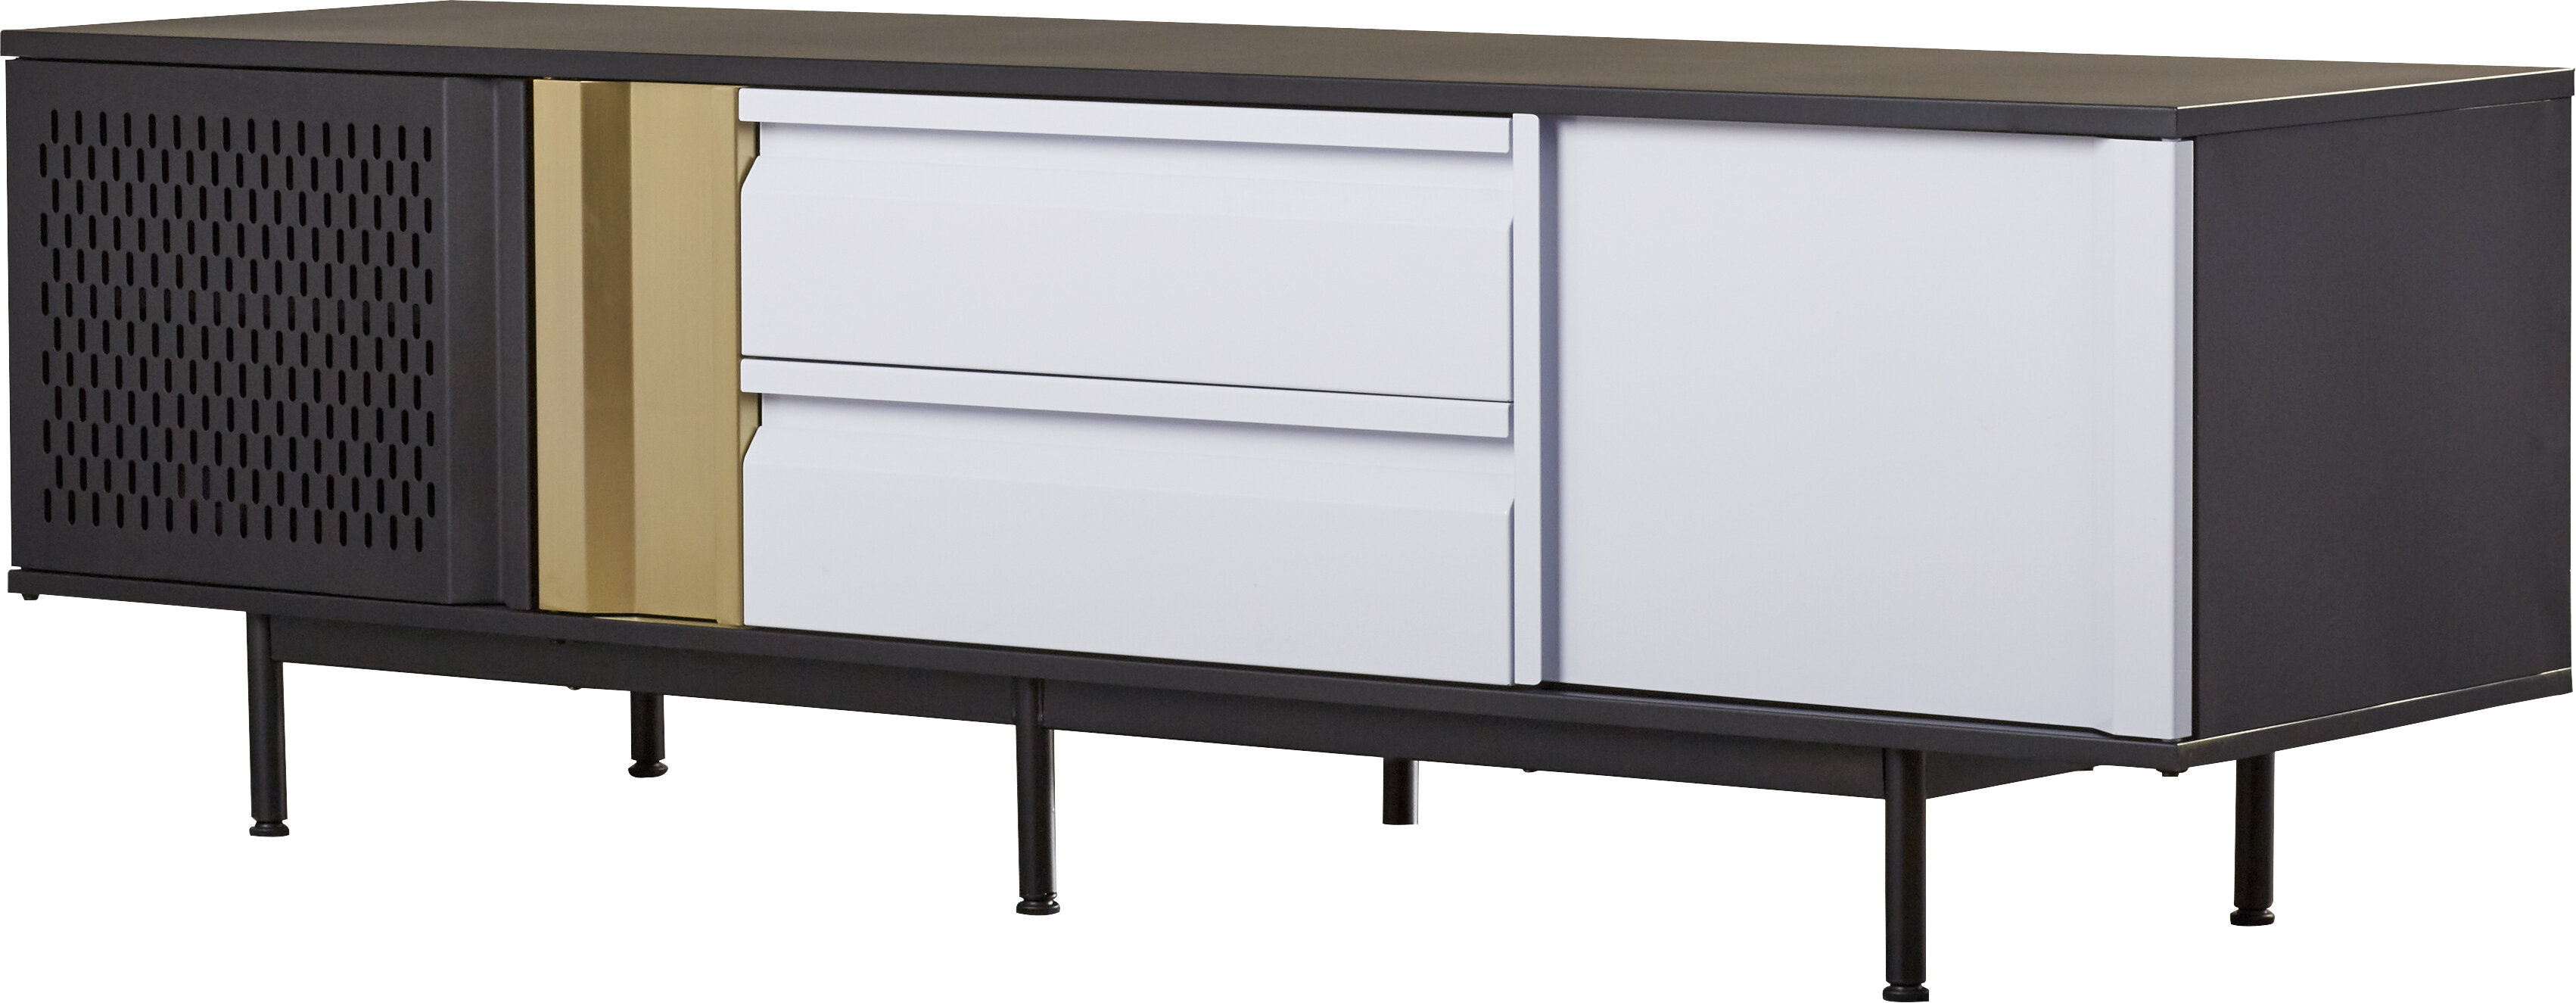 Cutlip 2 Door Credenza on consoles and credenzas, made in usa modern credenzas, modern sideboards with sliding door, country style credenzas, industrial modern credenzas, post modern credenzas, modern sideboards and hutches,